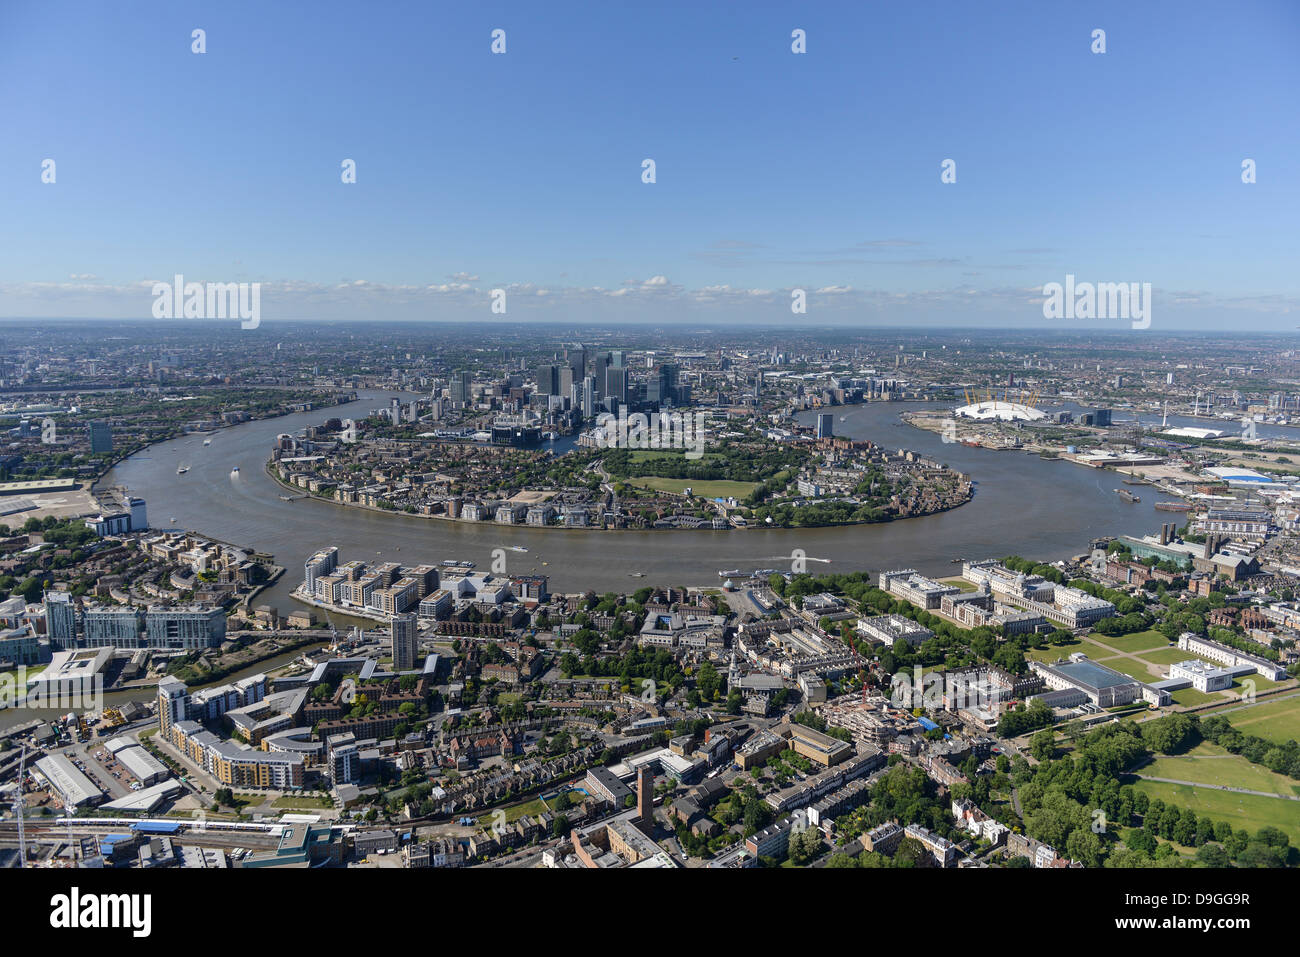 Aerial photograph Showing Isle of Dogs and Canary Wharf - Stock Image